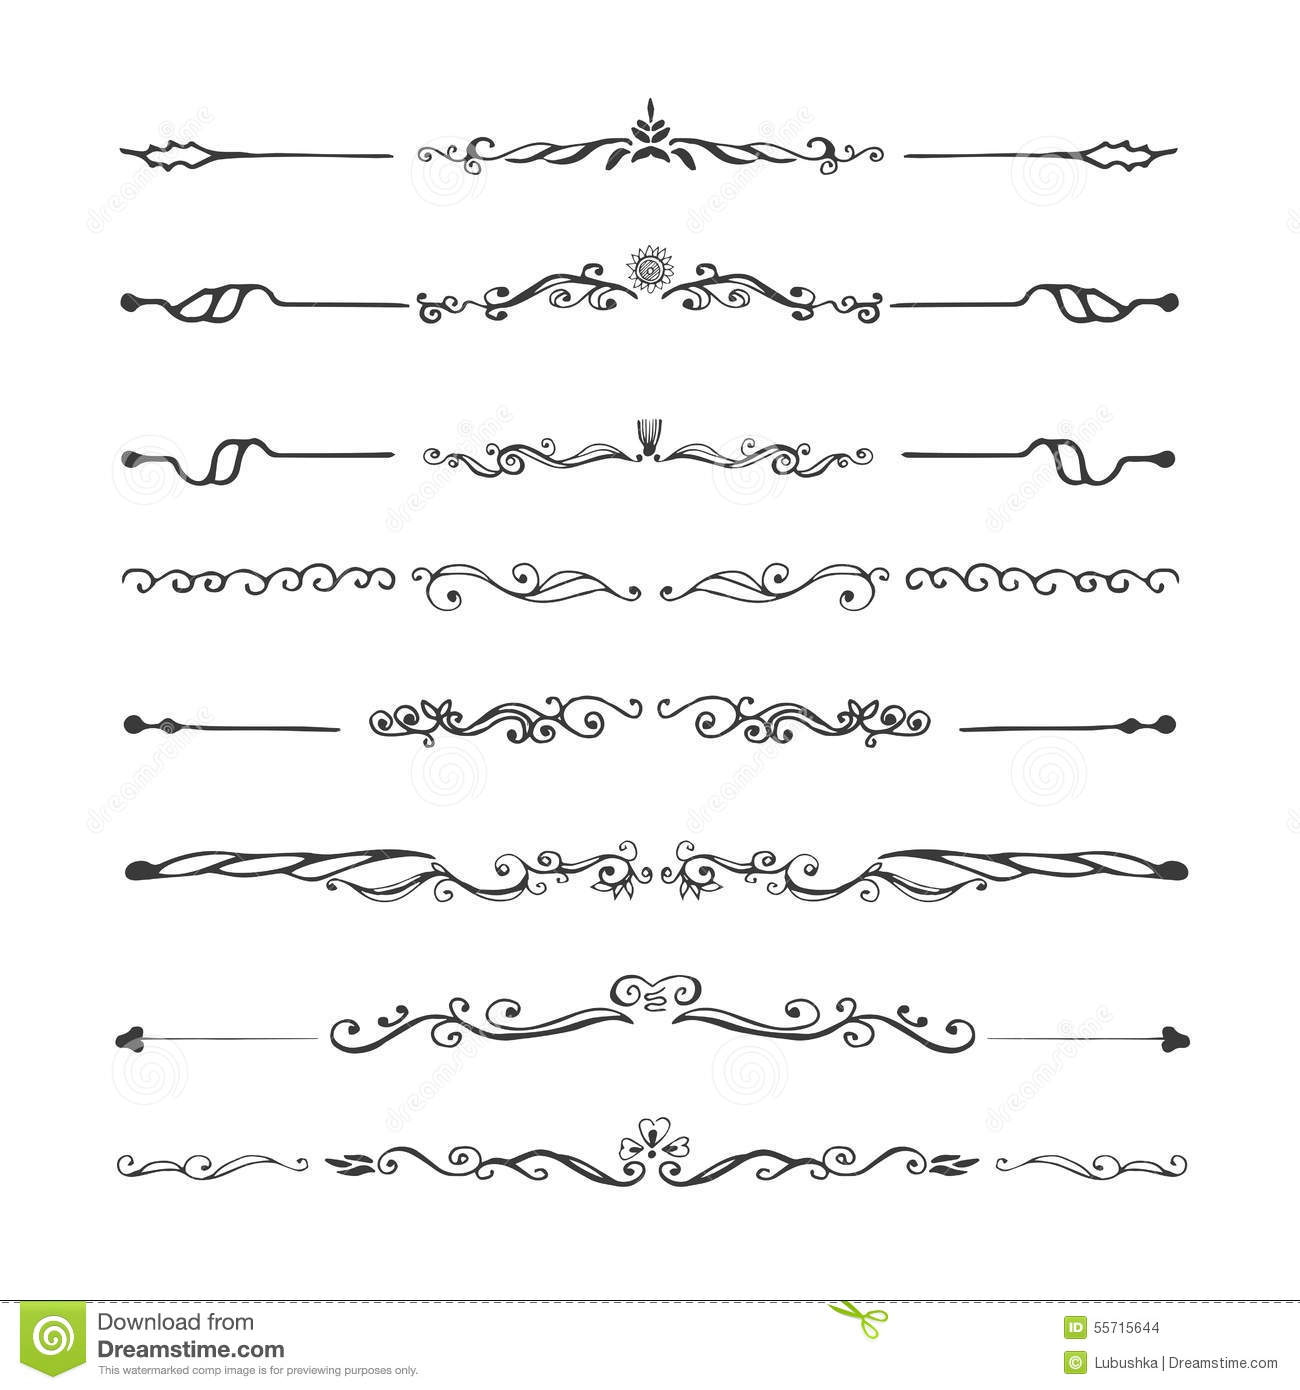 Retro Style Set Of Ornate Floral Patterns Template Stock Vector ...